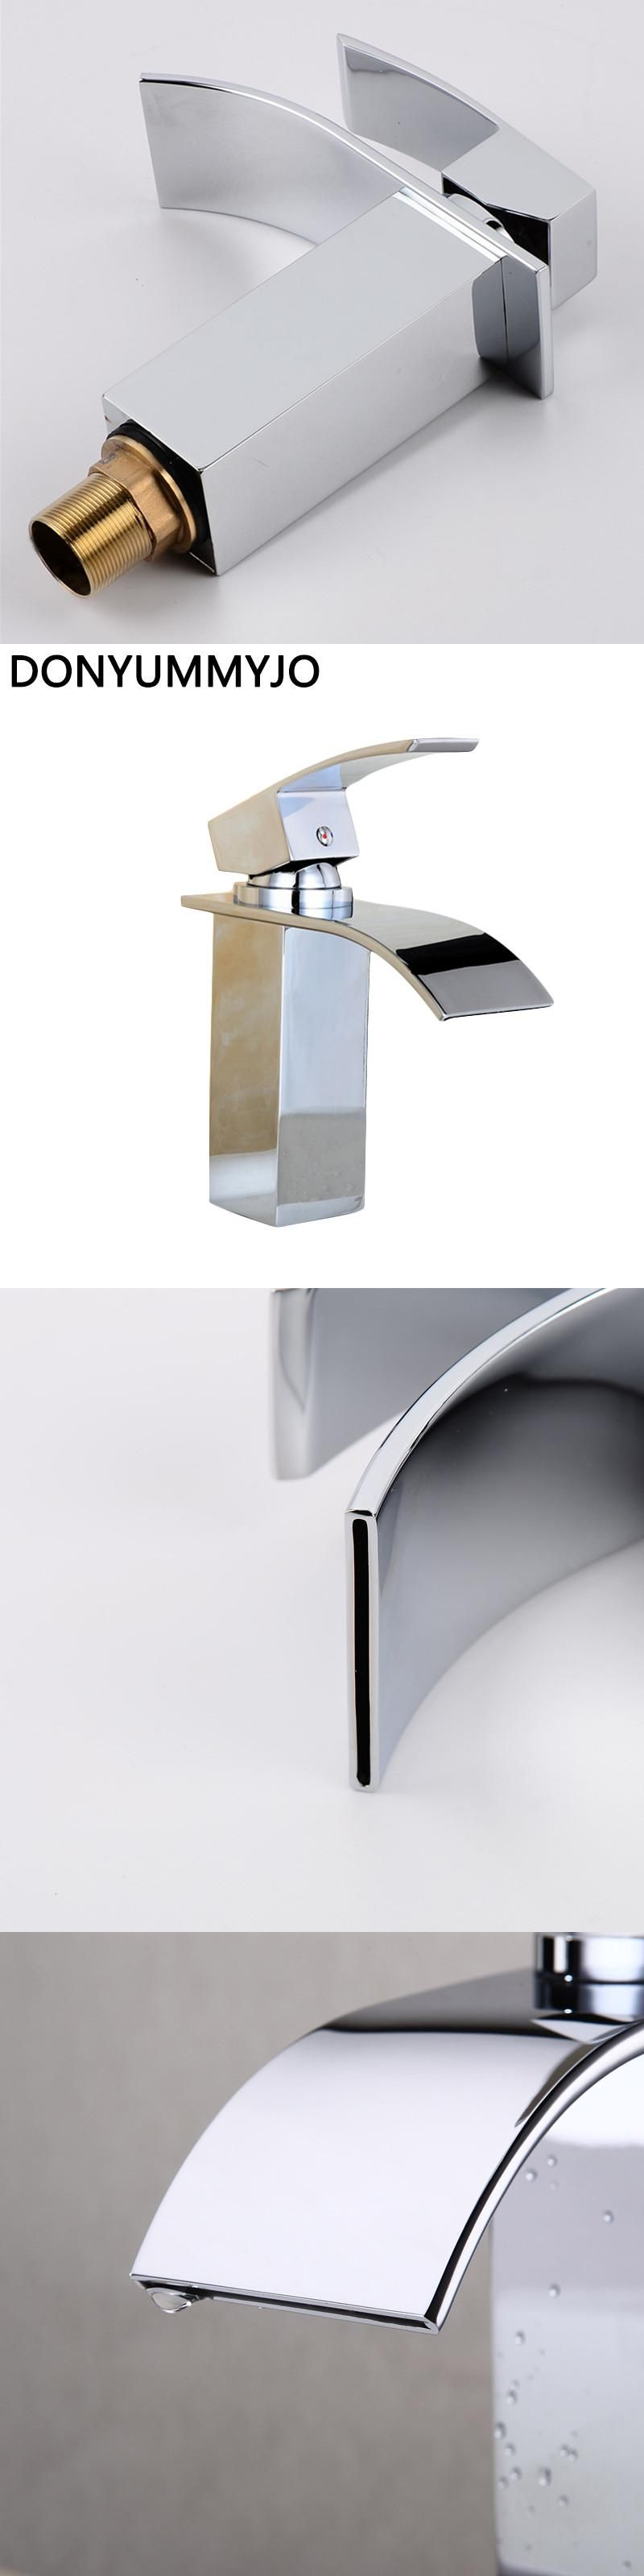 Sale High Quality Waterfall Bathroom Faucet Deck Mounted Chrome ...